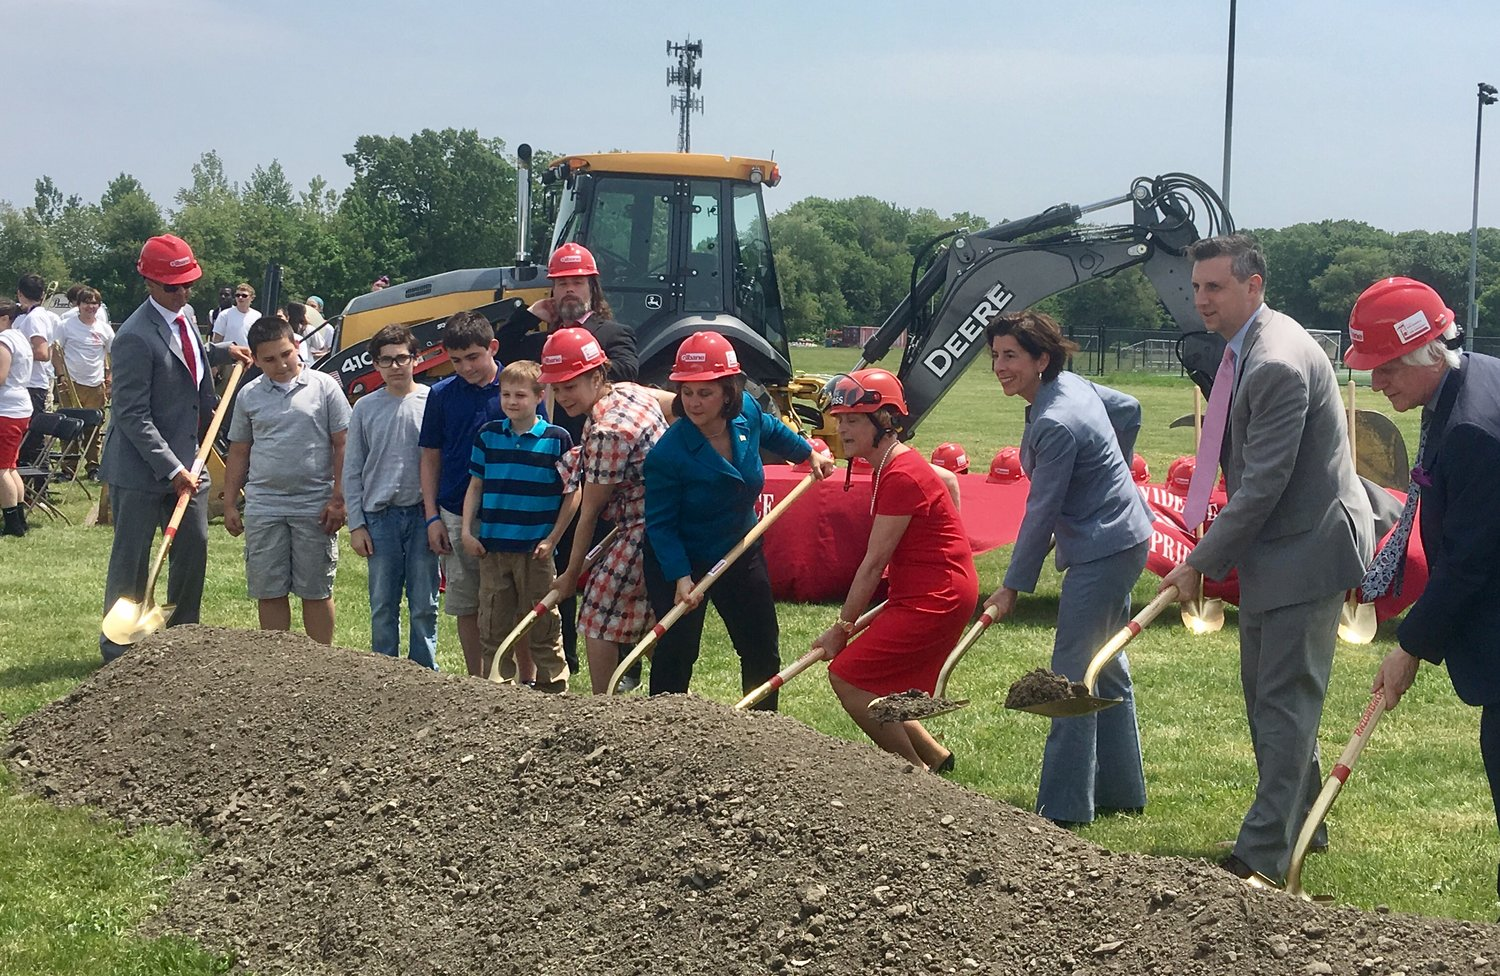 State and local officials perform the ceremonial shoveling of dirt at the new East Providence High School groundbreaking event Wednesday, June 6.